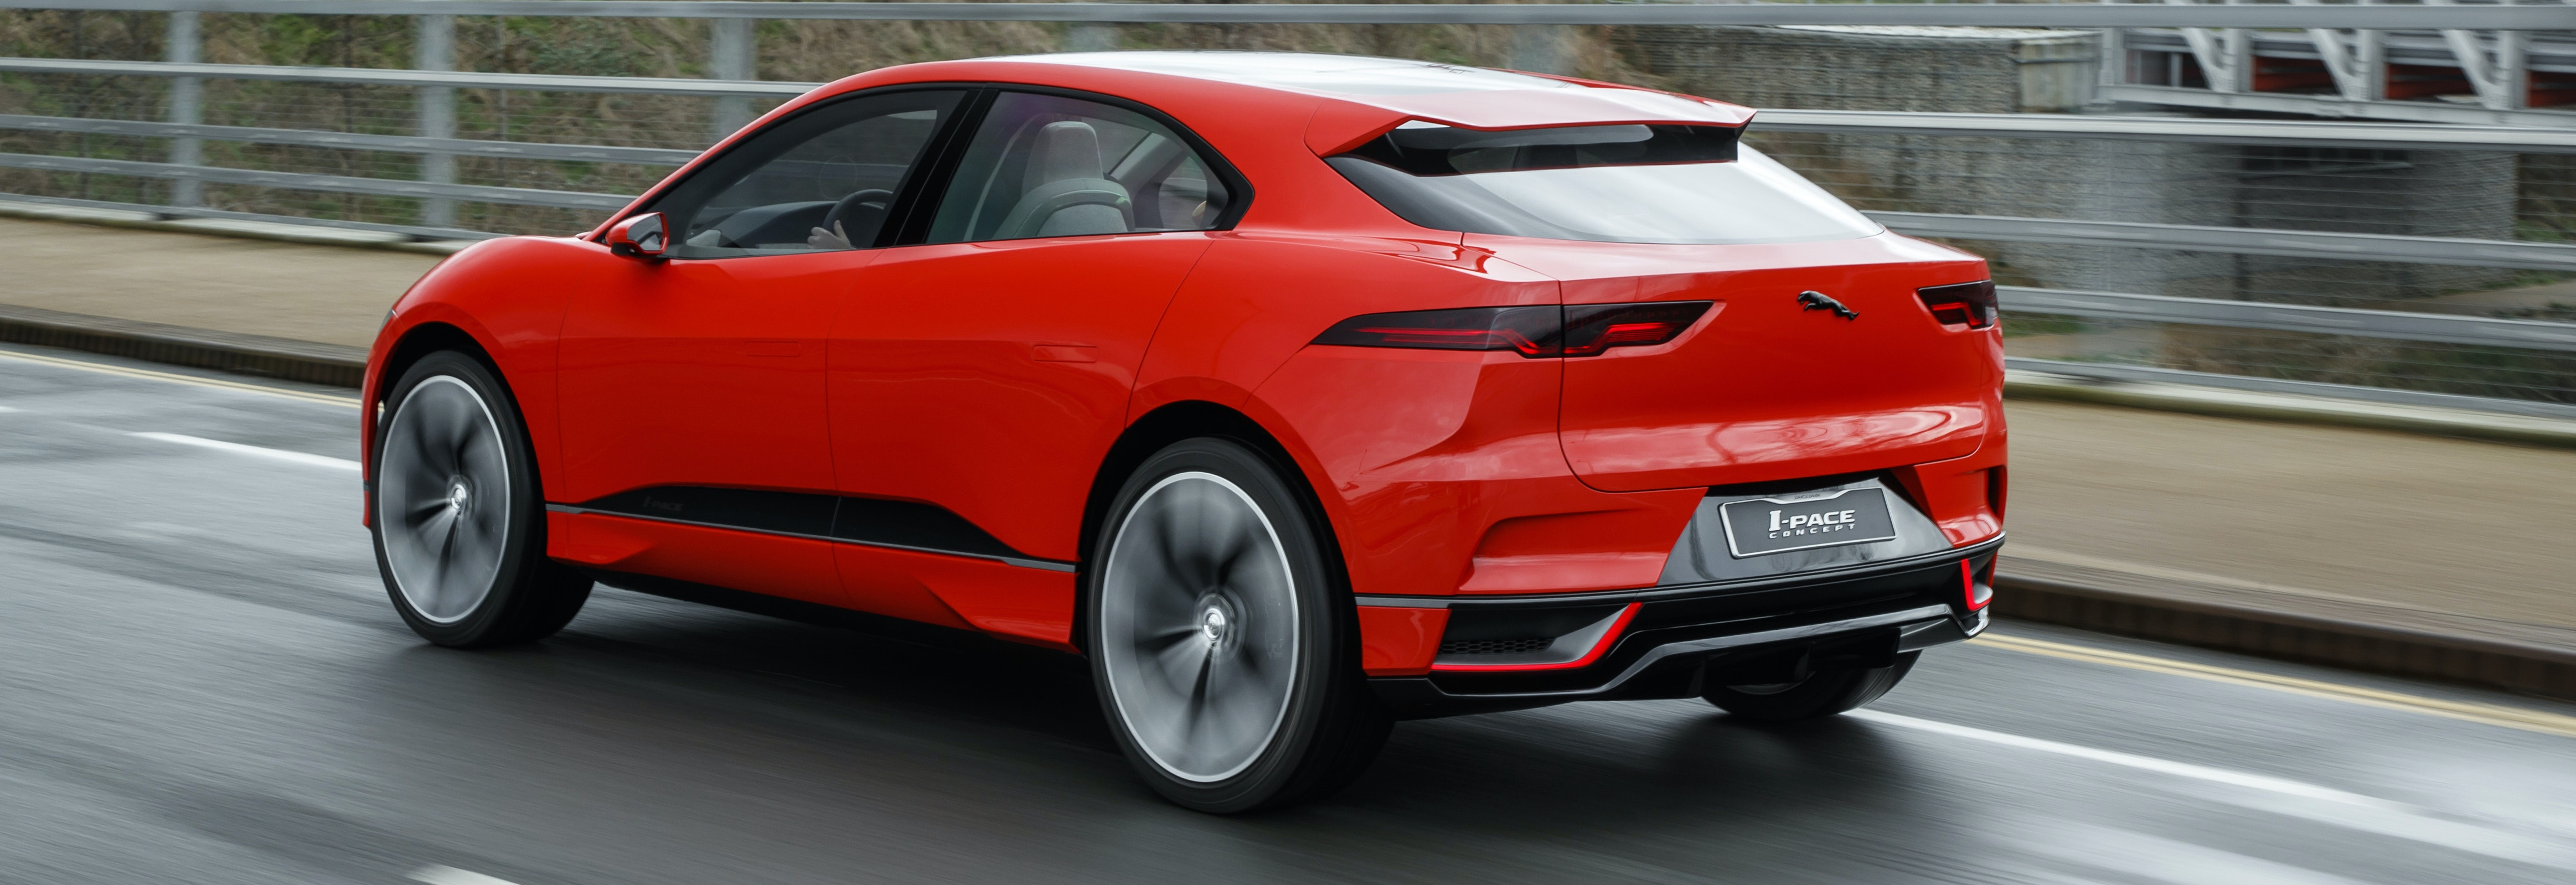 Jaguar I Pace Electric Suv Price Specs Release Date Carwow Autos Post